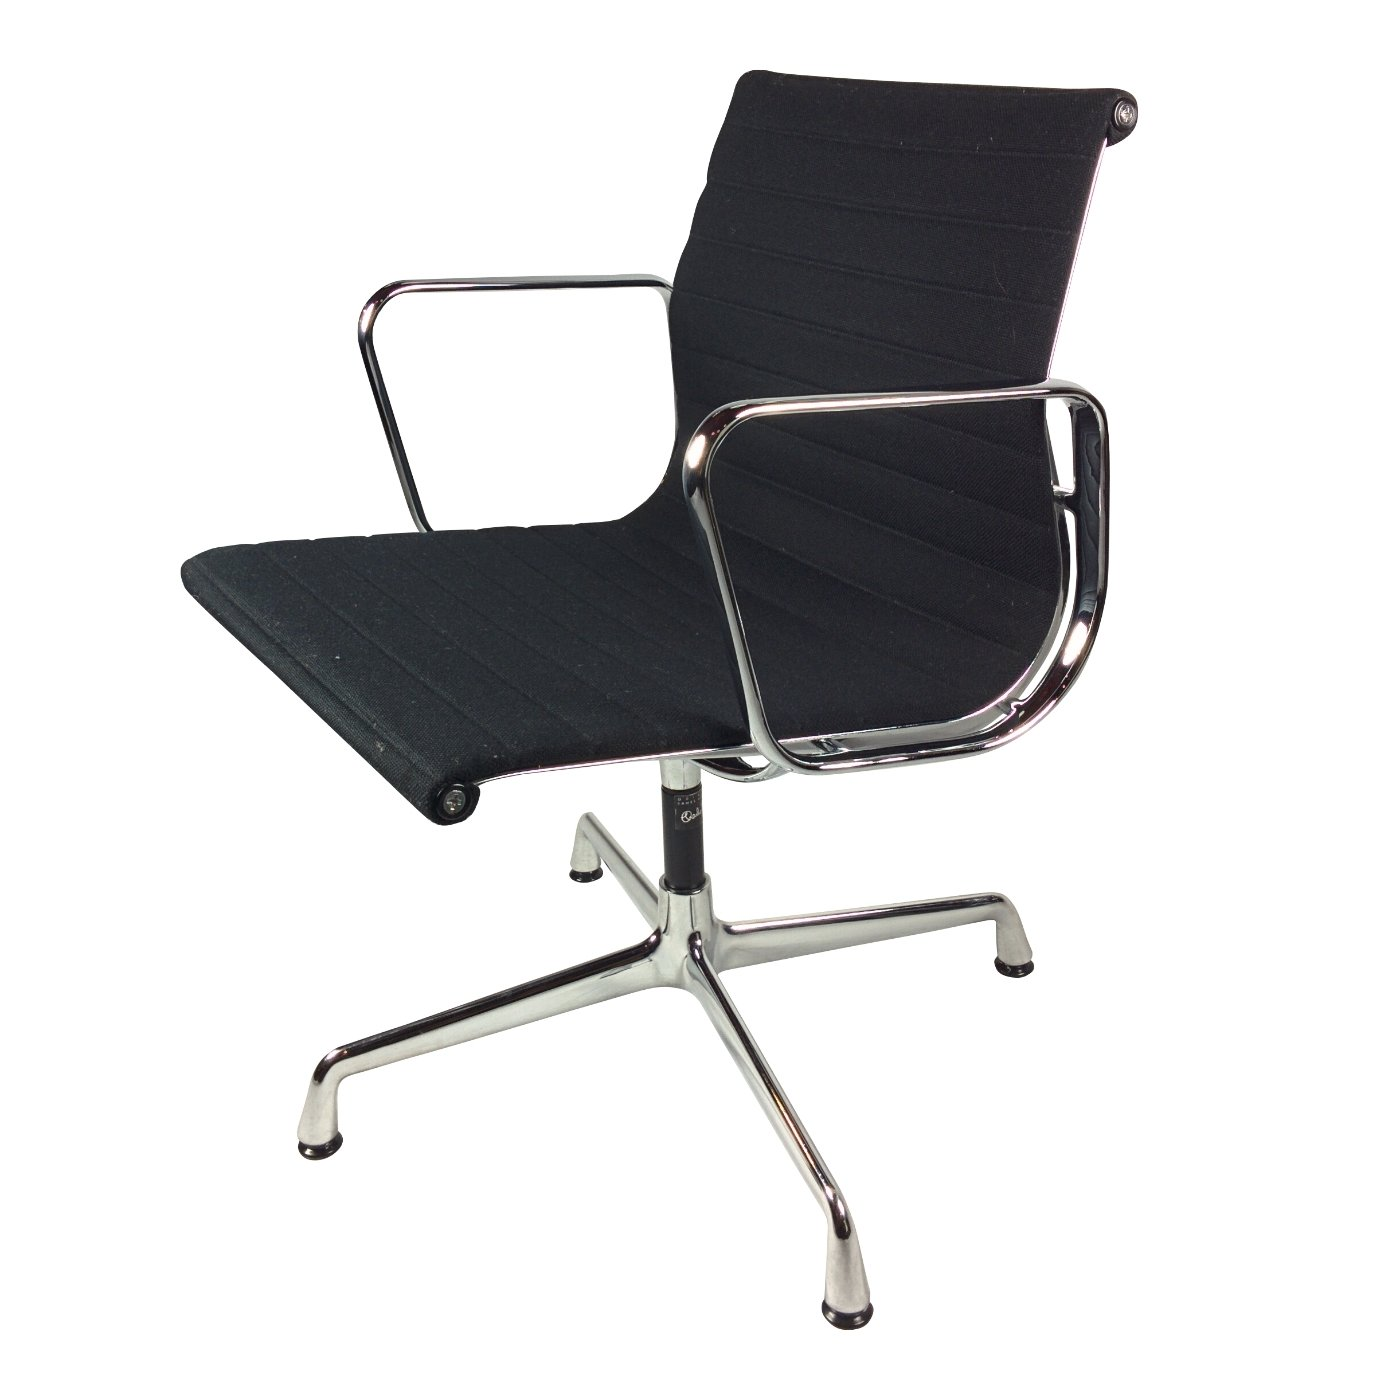 Ea 108 office chair by charles ray eames for vitra for Vitra ea 108 replica